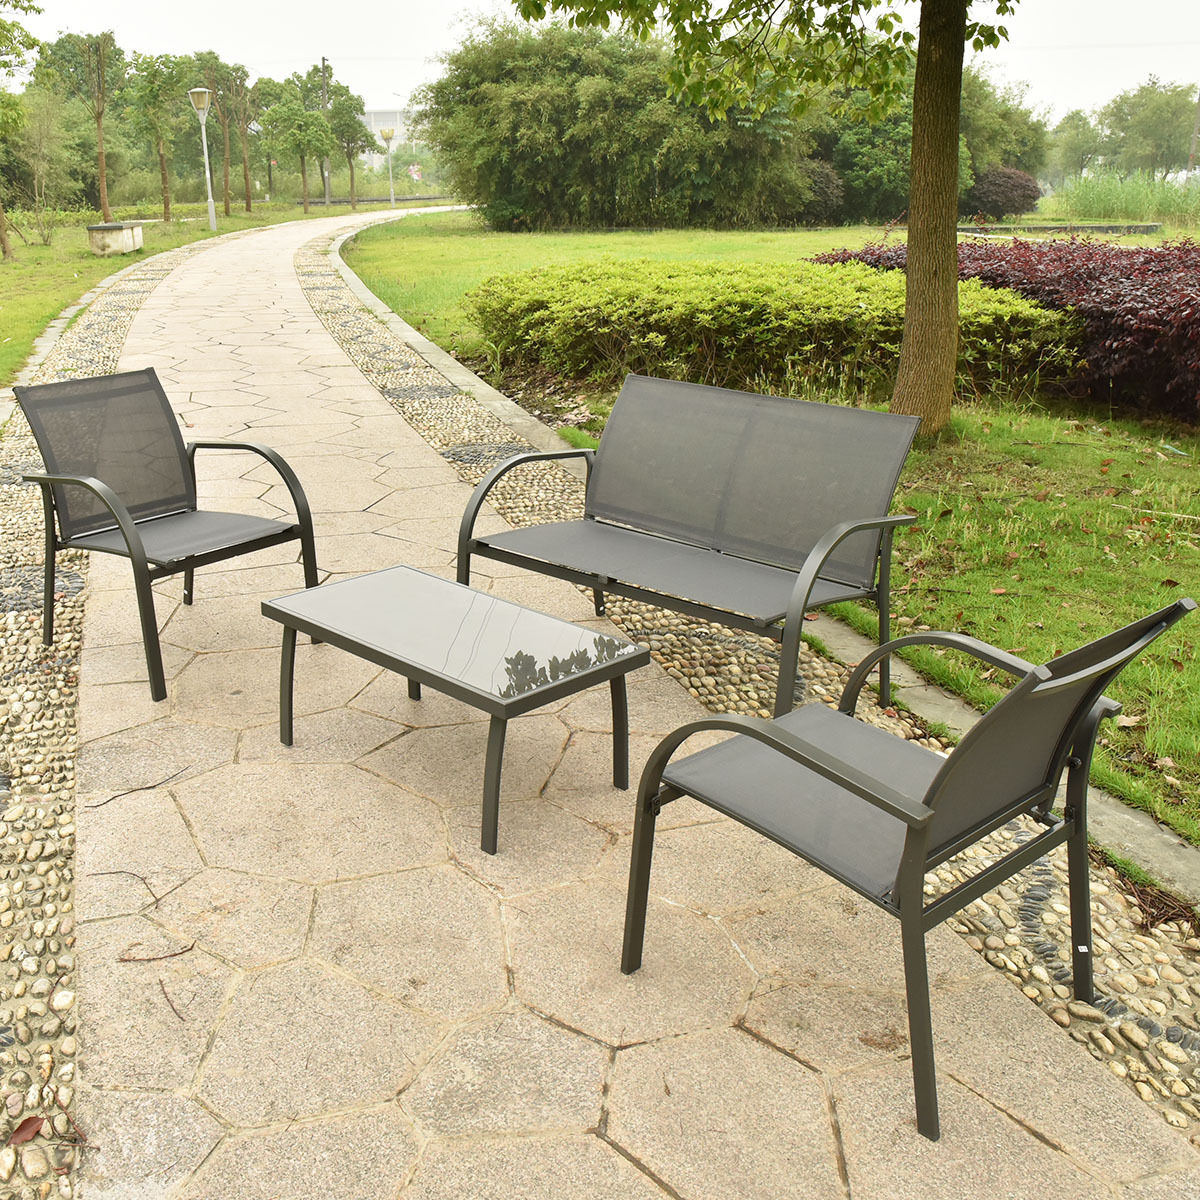 GHP 4-Pcs Outdoor Deep Gray Durable Powder Coated Steel Coffee Table and Chairs Set